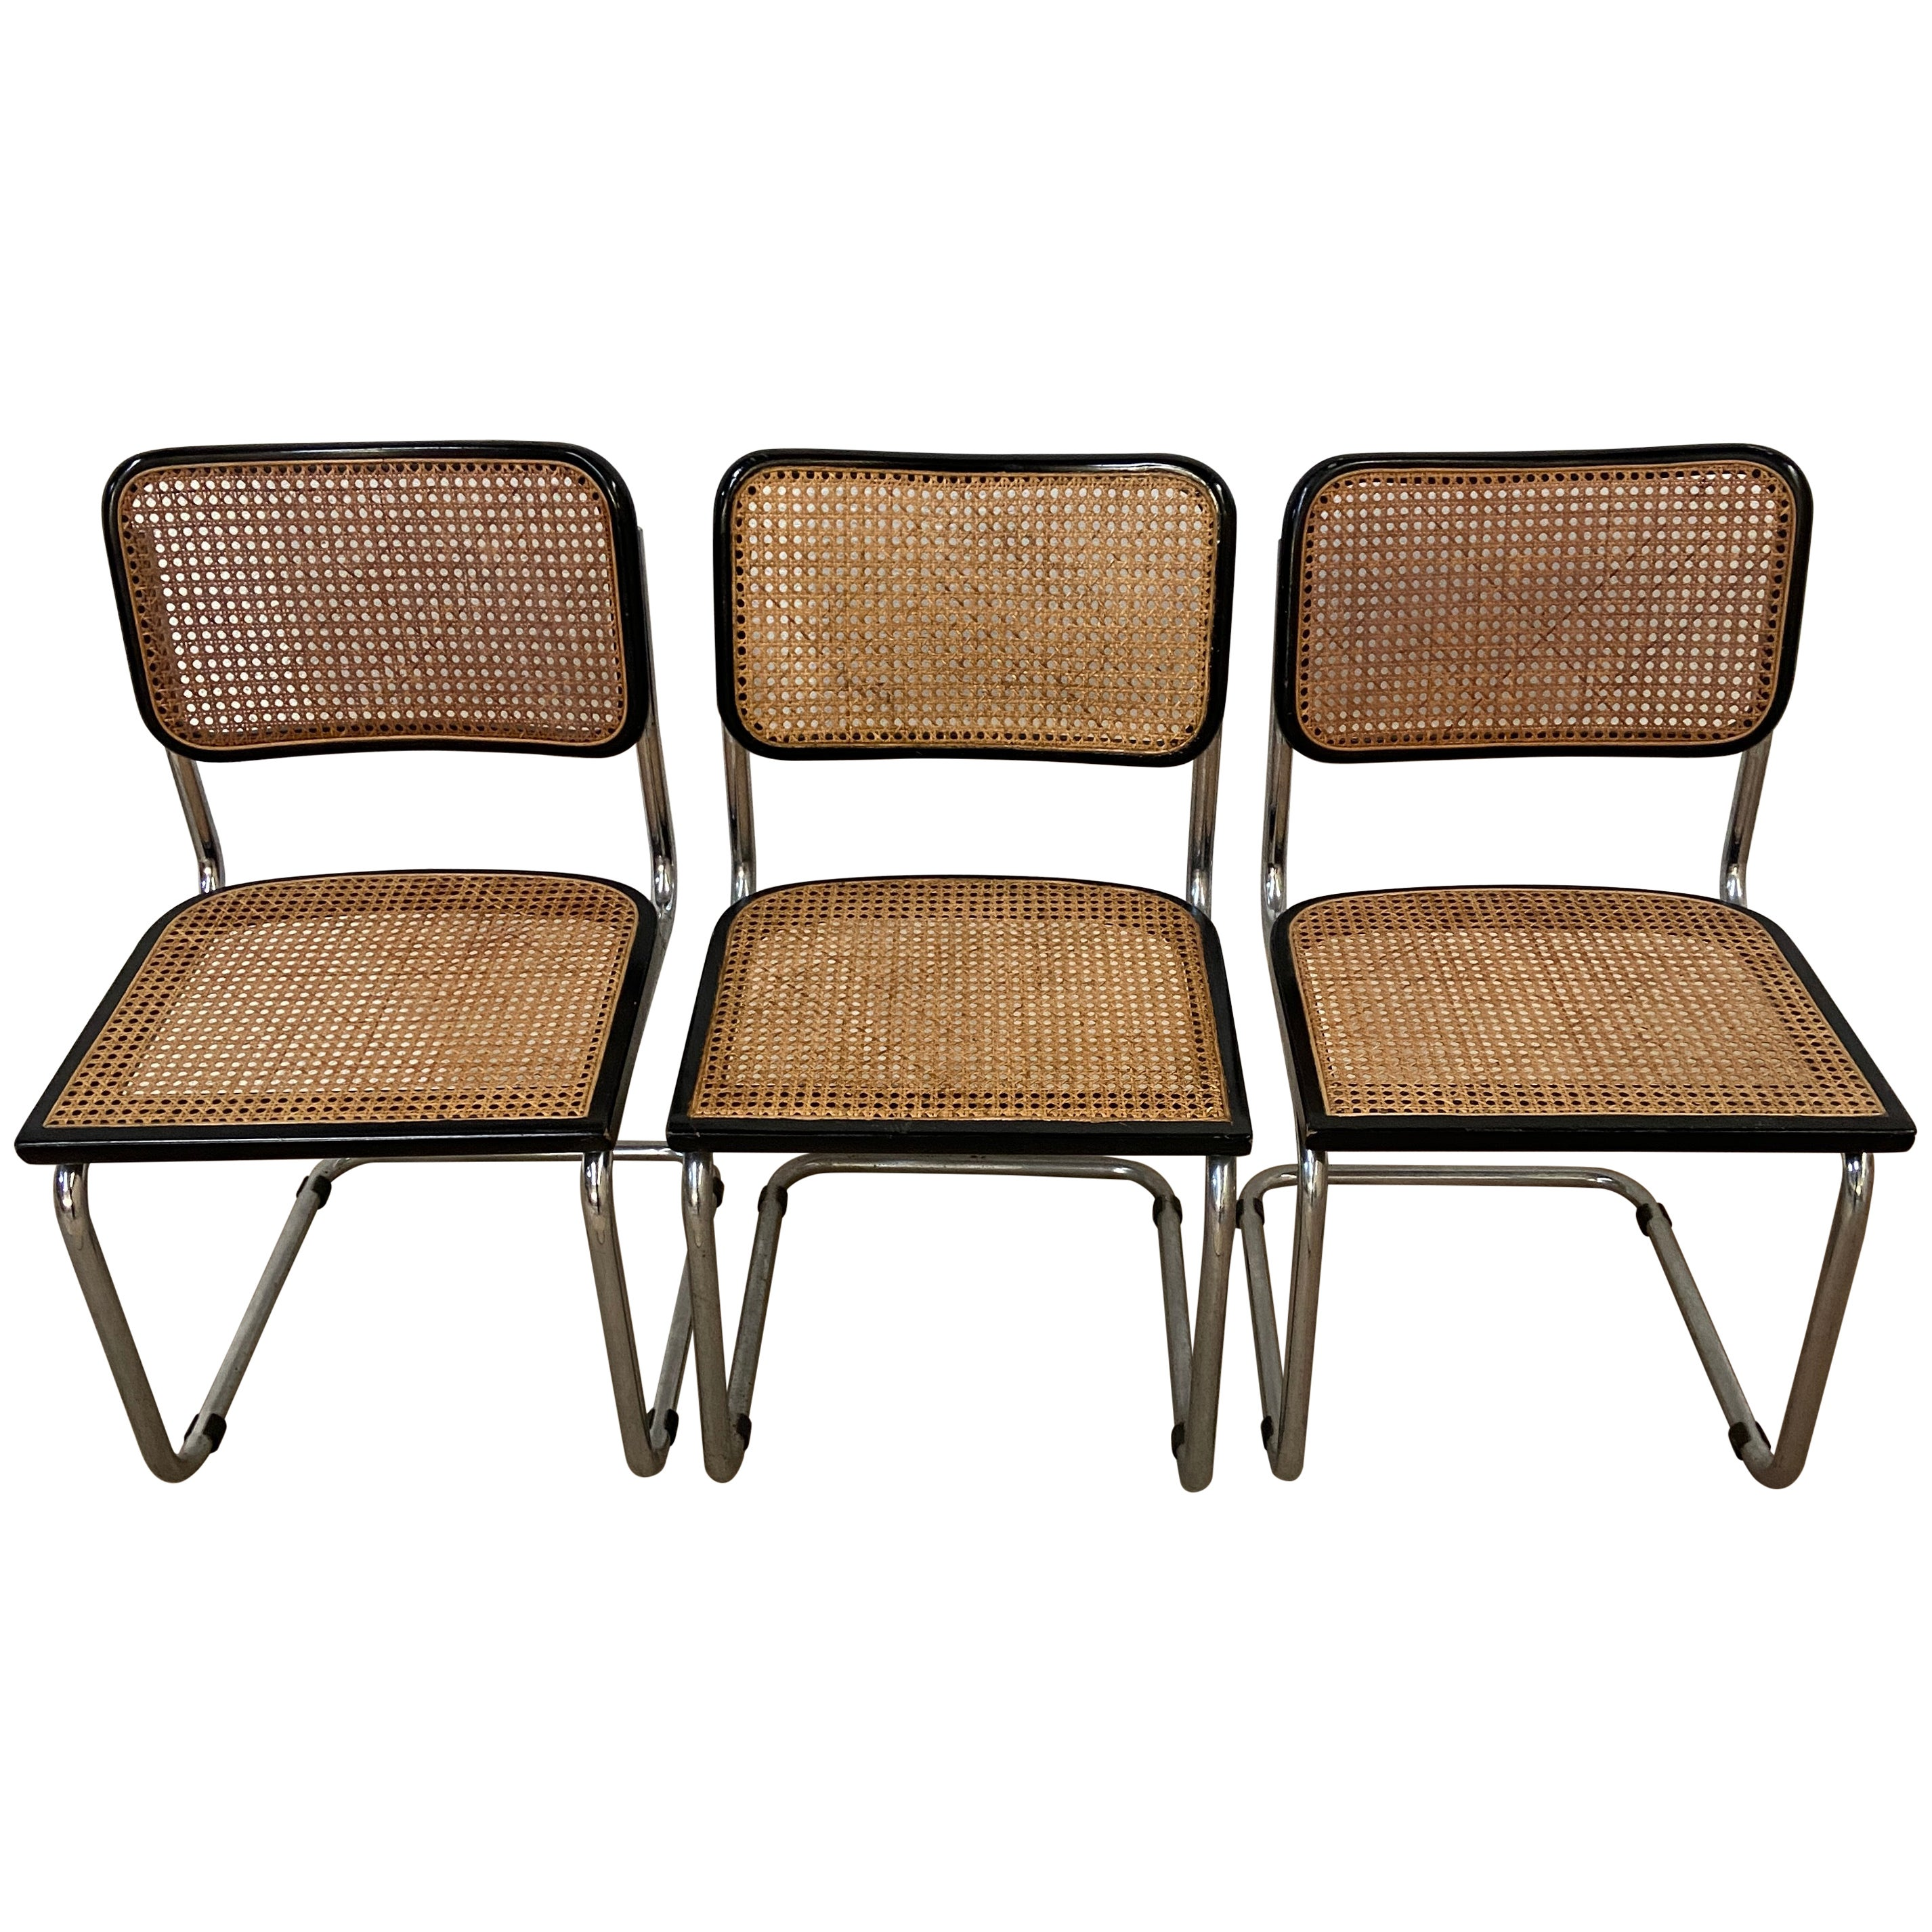 Mid-Century Modern Italian Set of Chrome and Black Cesca Chair by Marcel Breuer